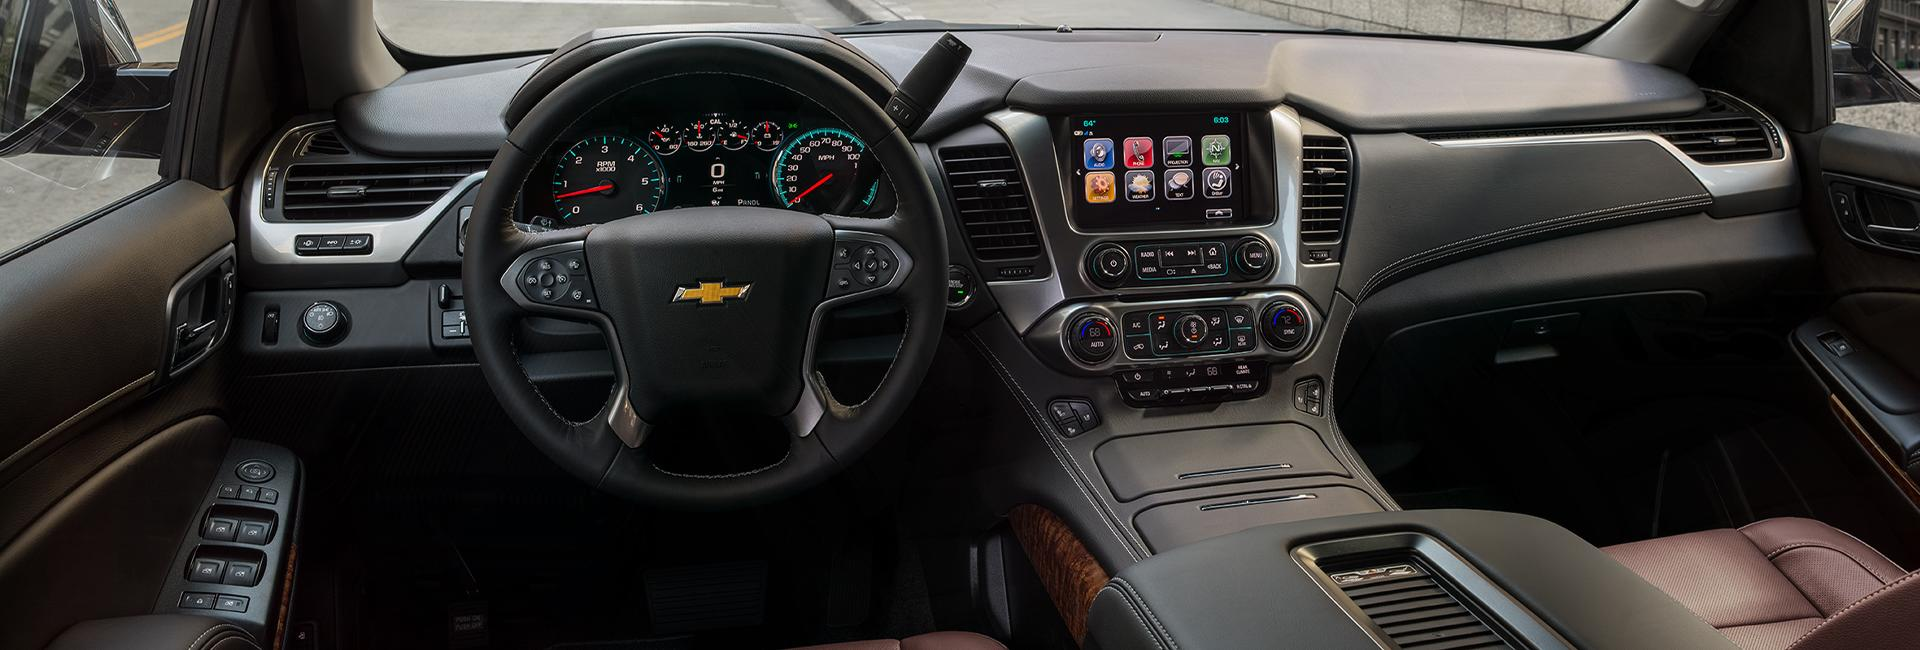 Picture of the interior of the 2020 Chevy Tahoe